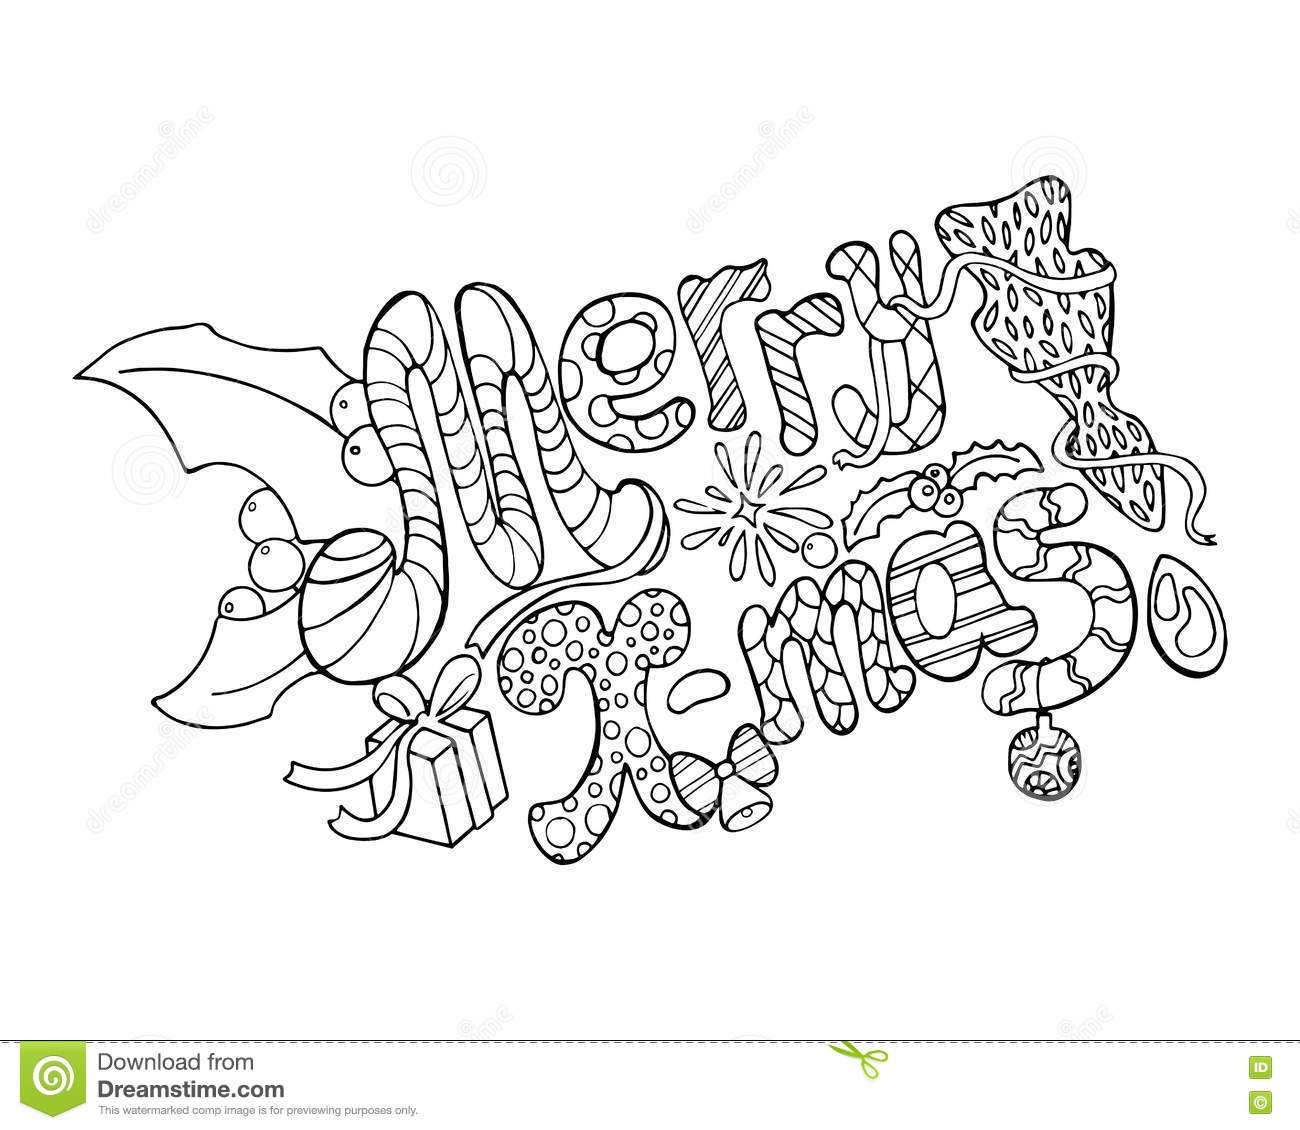 Christmas Coloring Greeting Cards With Merry Illustration Hand Drawn Lettering